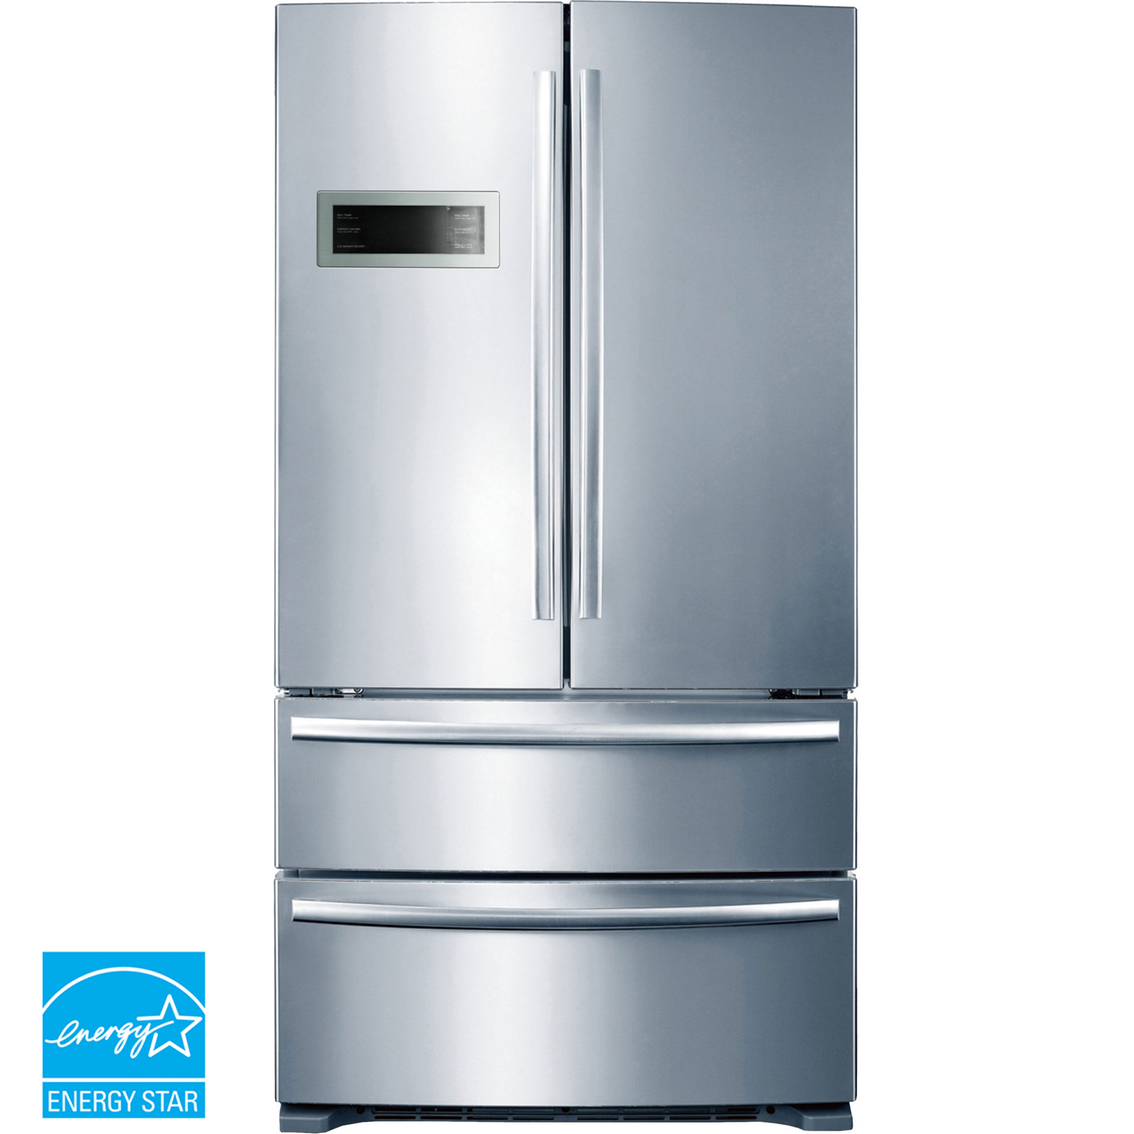 20 Cu Ft French Door Refrigerator: Midea 20.7 Cu. Ft. French Door Refrigerator